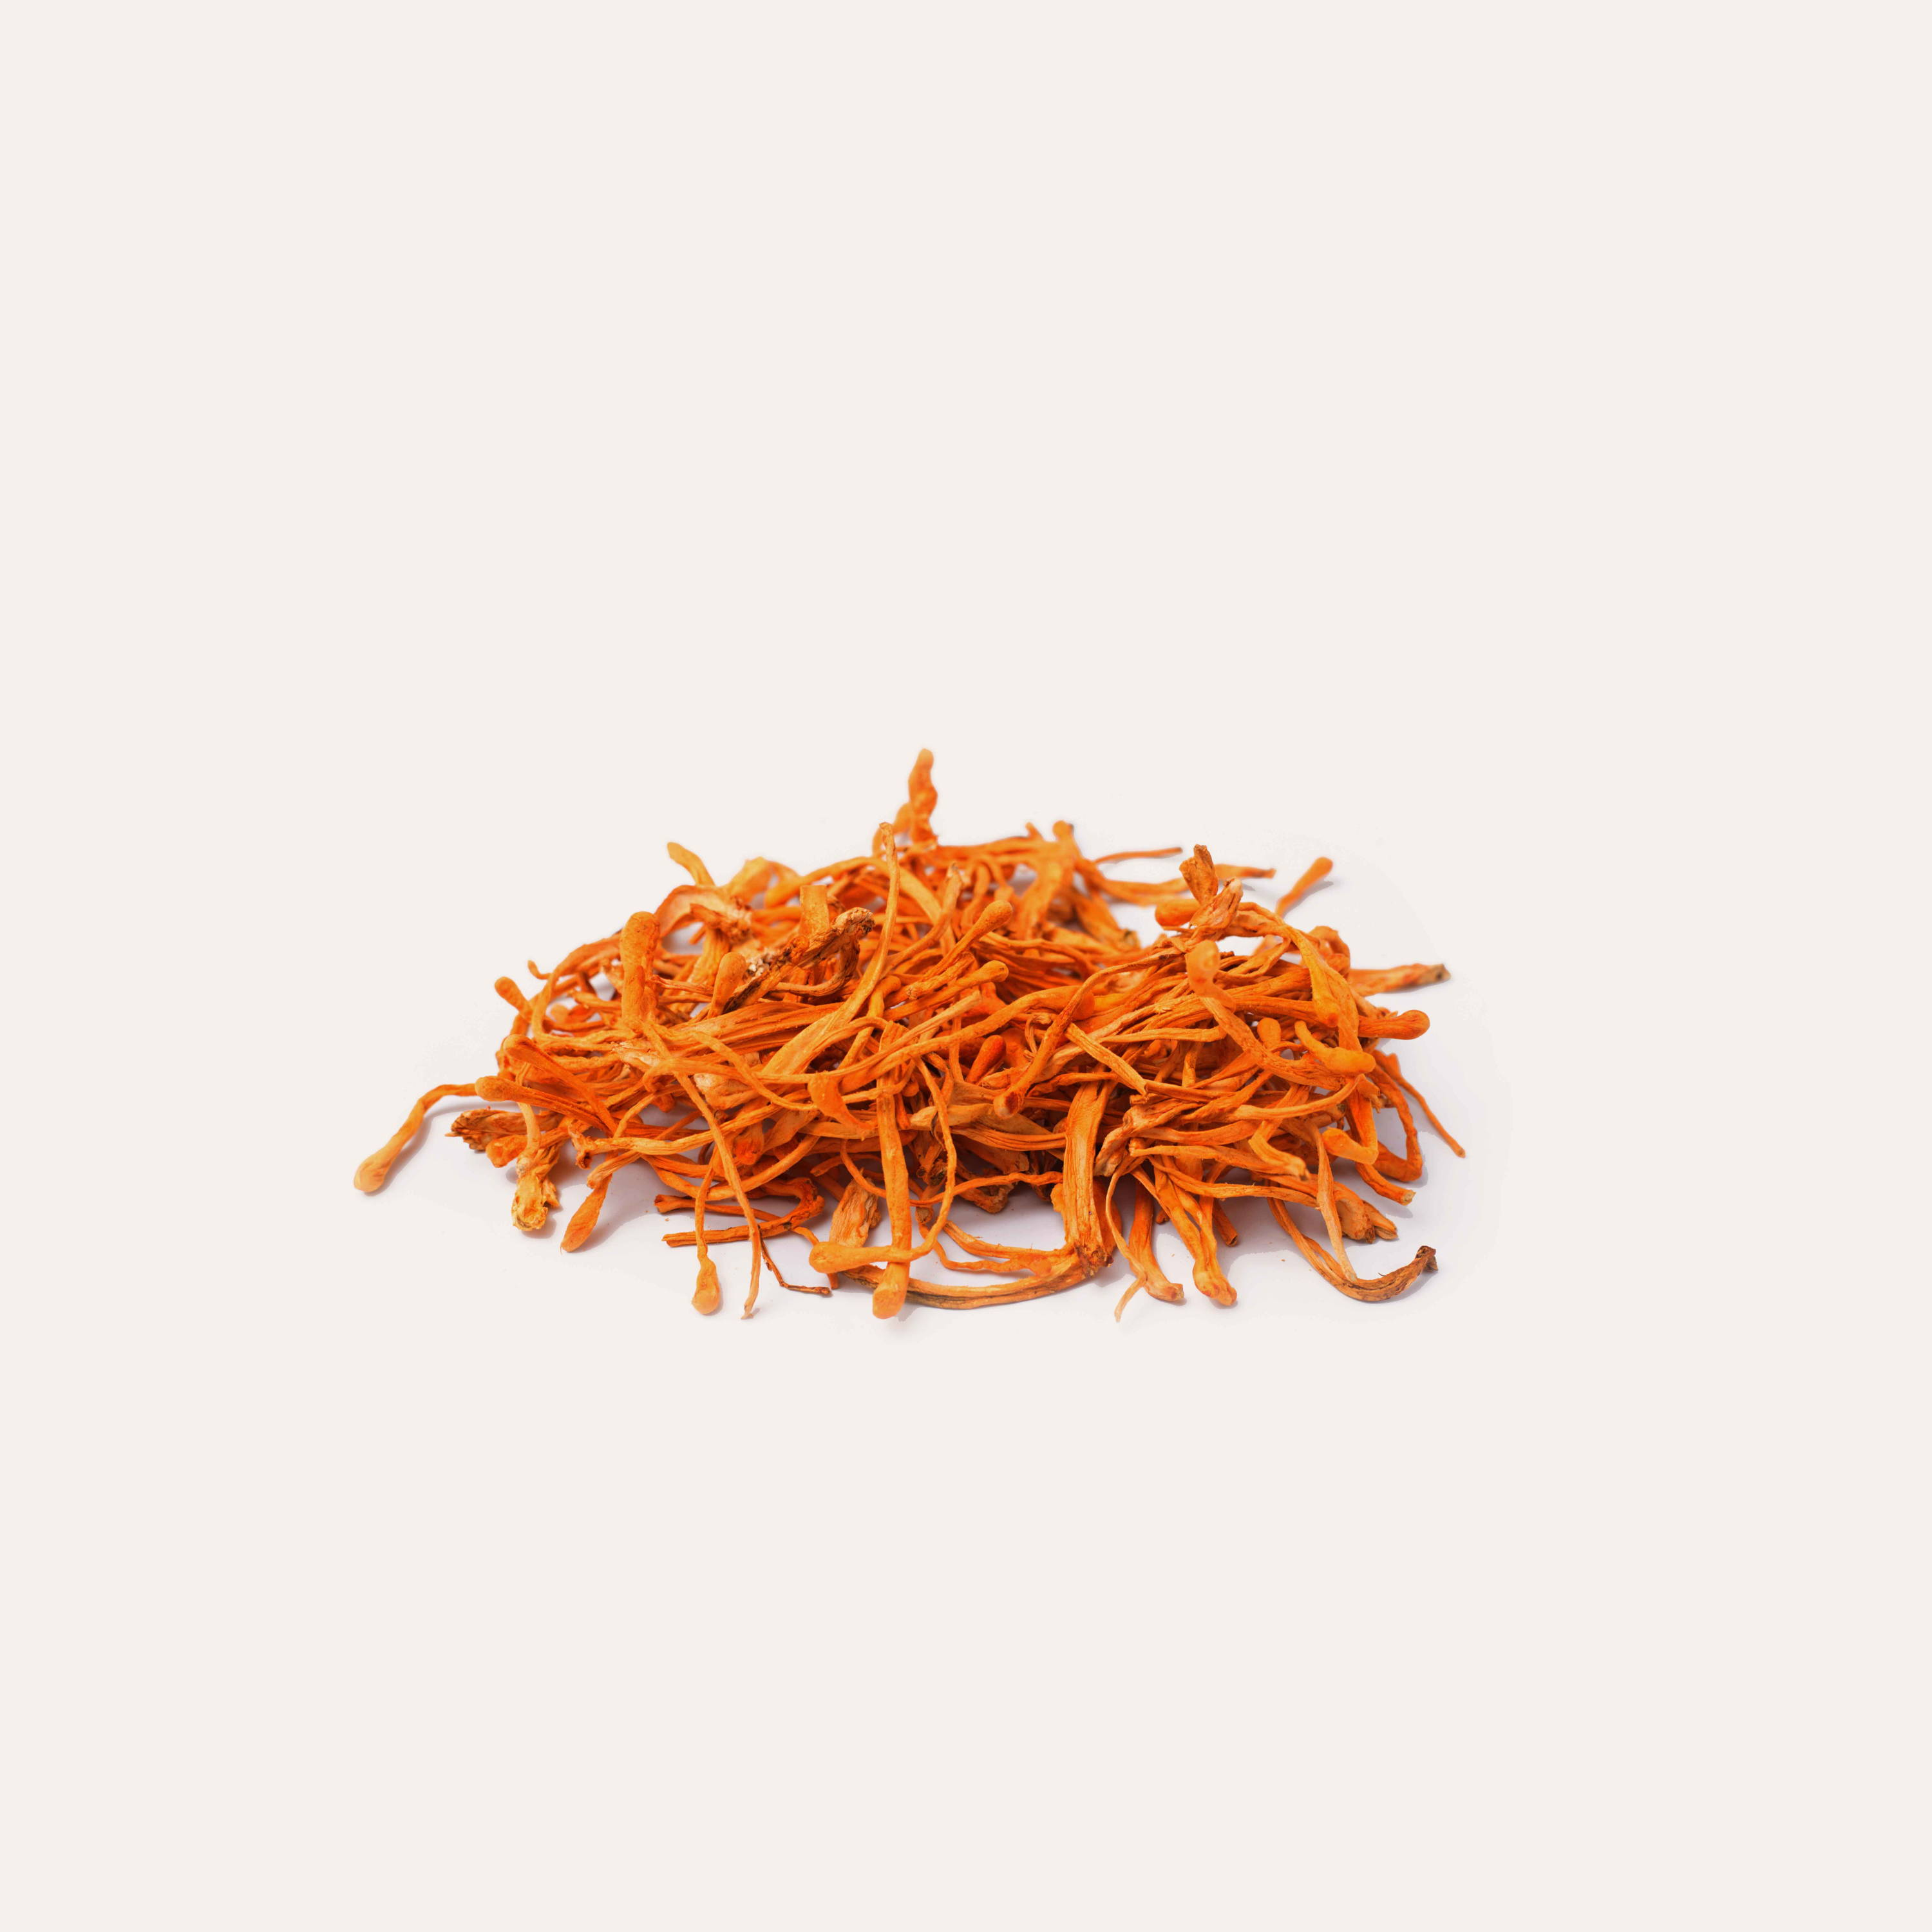 Cordyceps mushrooms on solid background